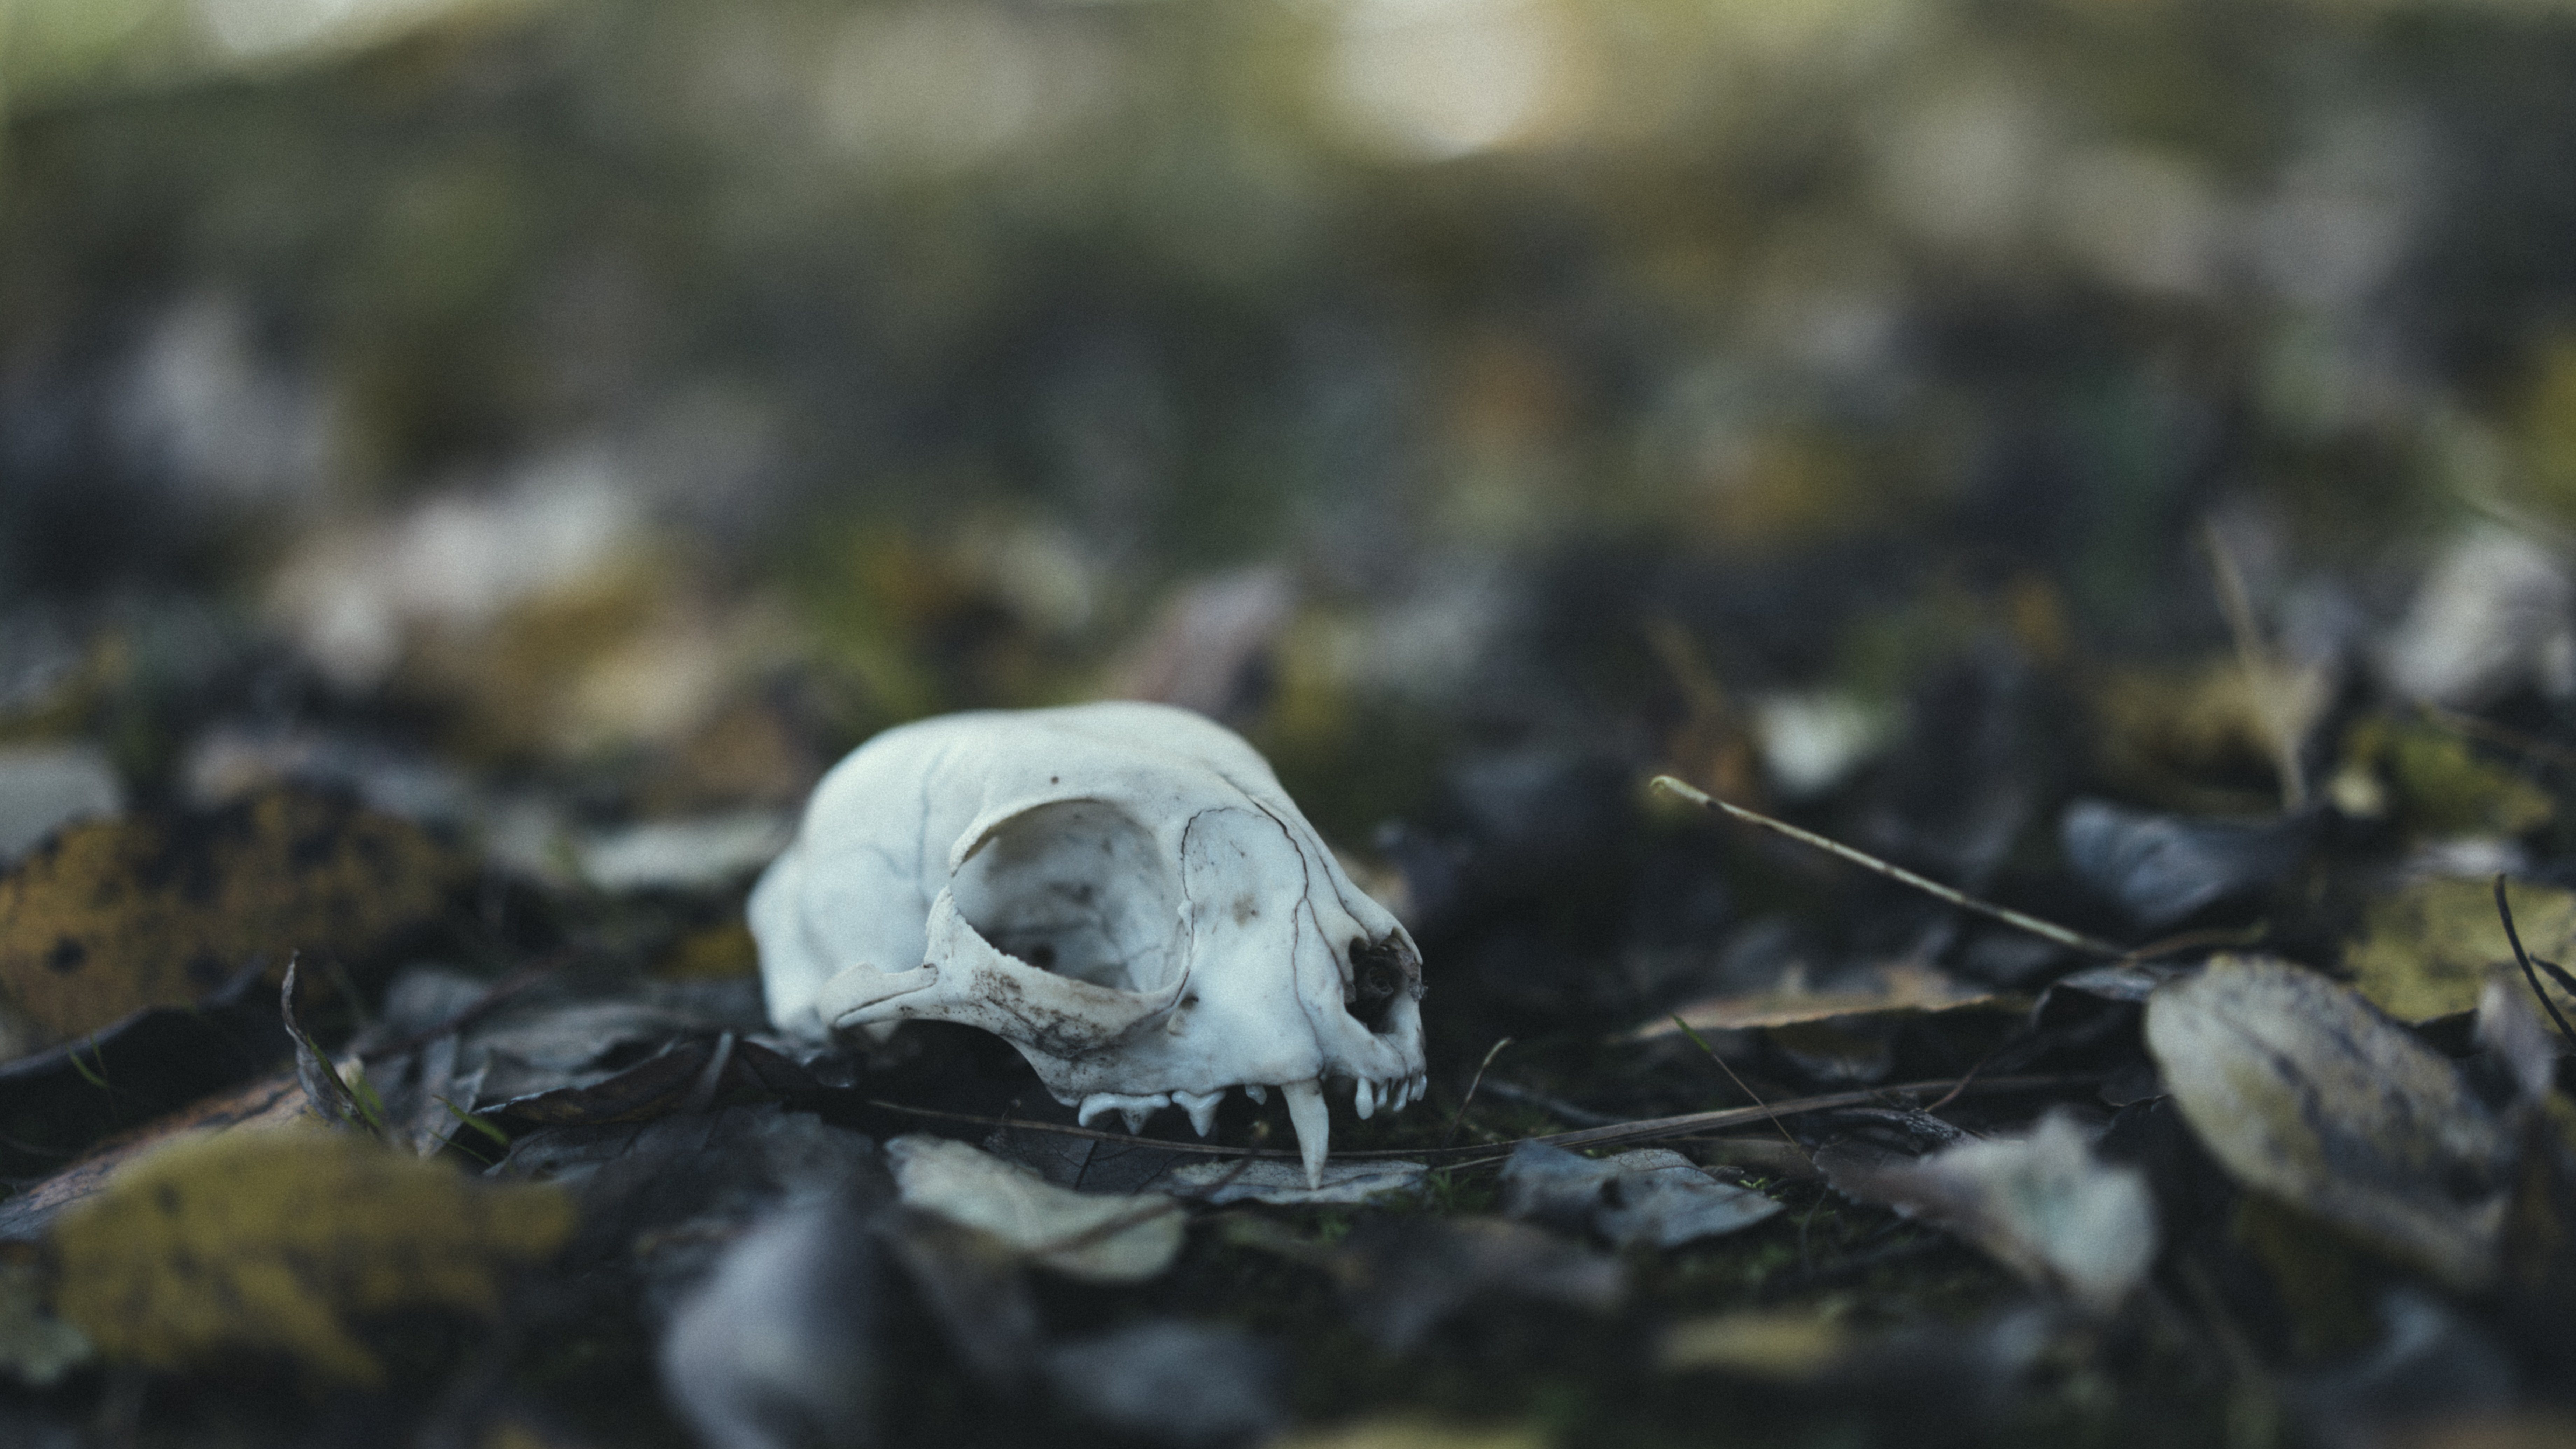 Found a Skull in My Backyard Thought Someone Might Like It as a October wallpaper